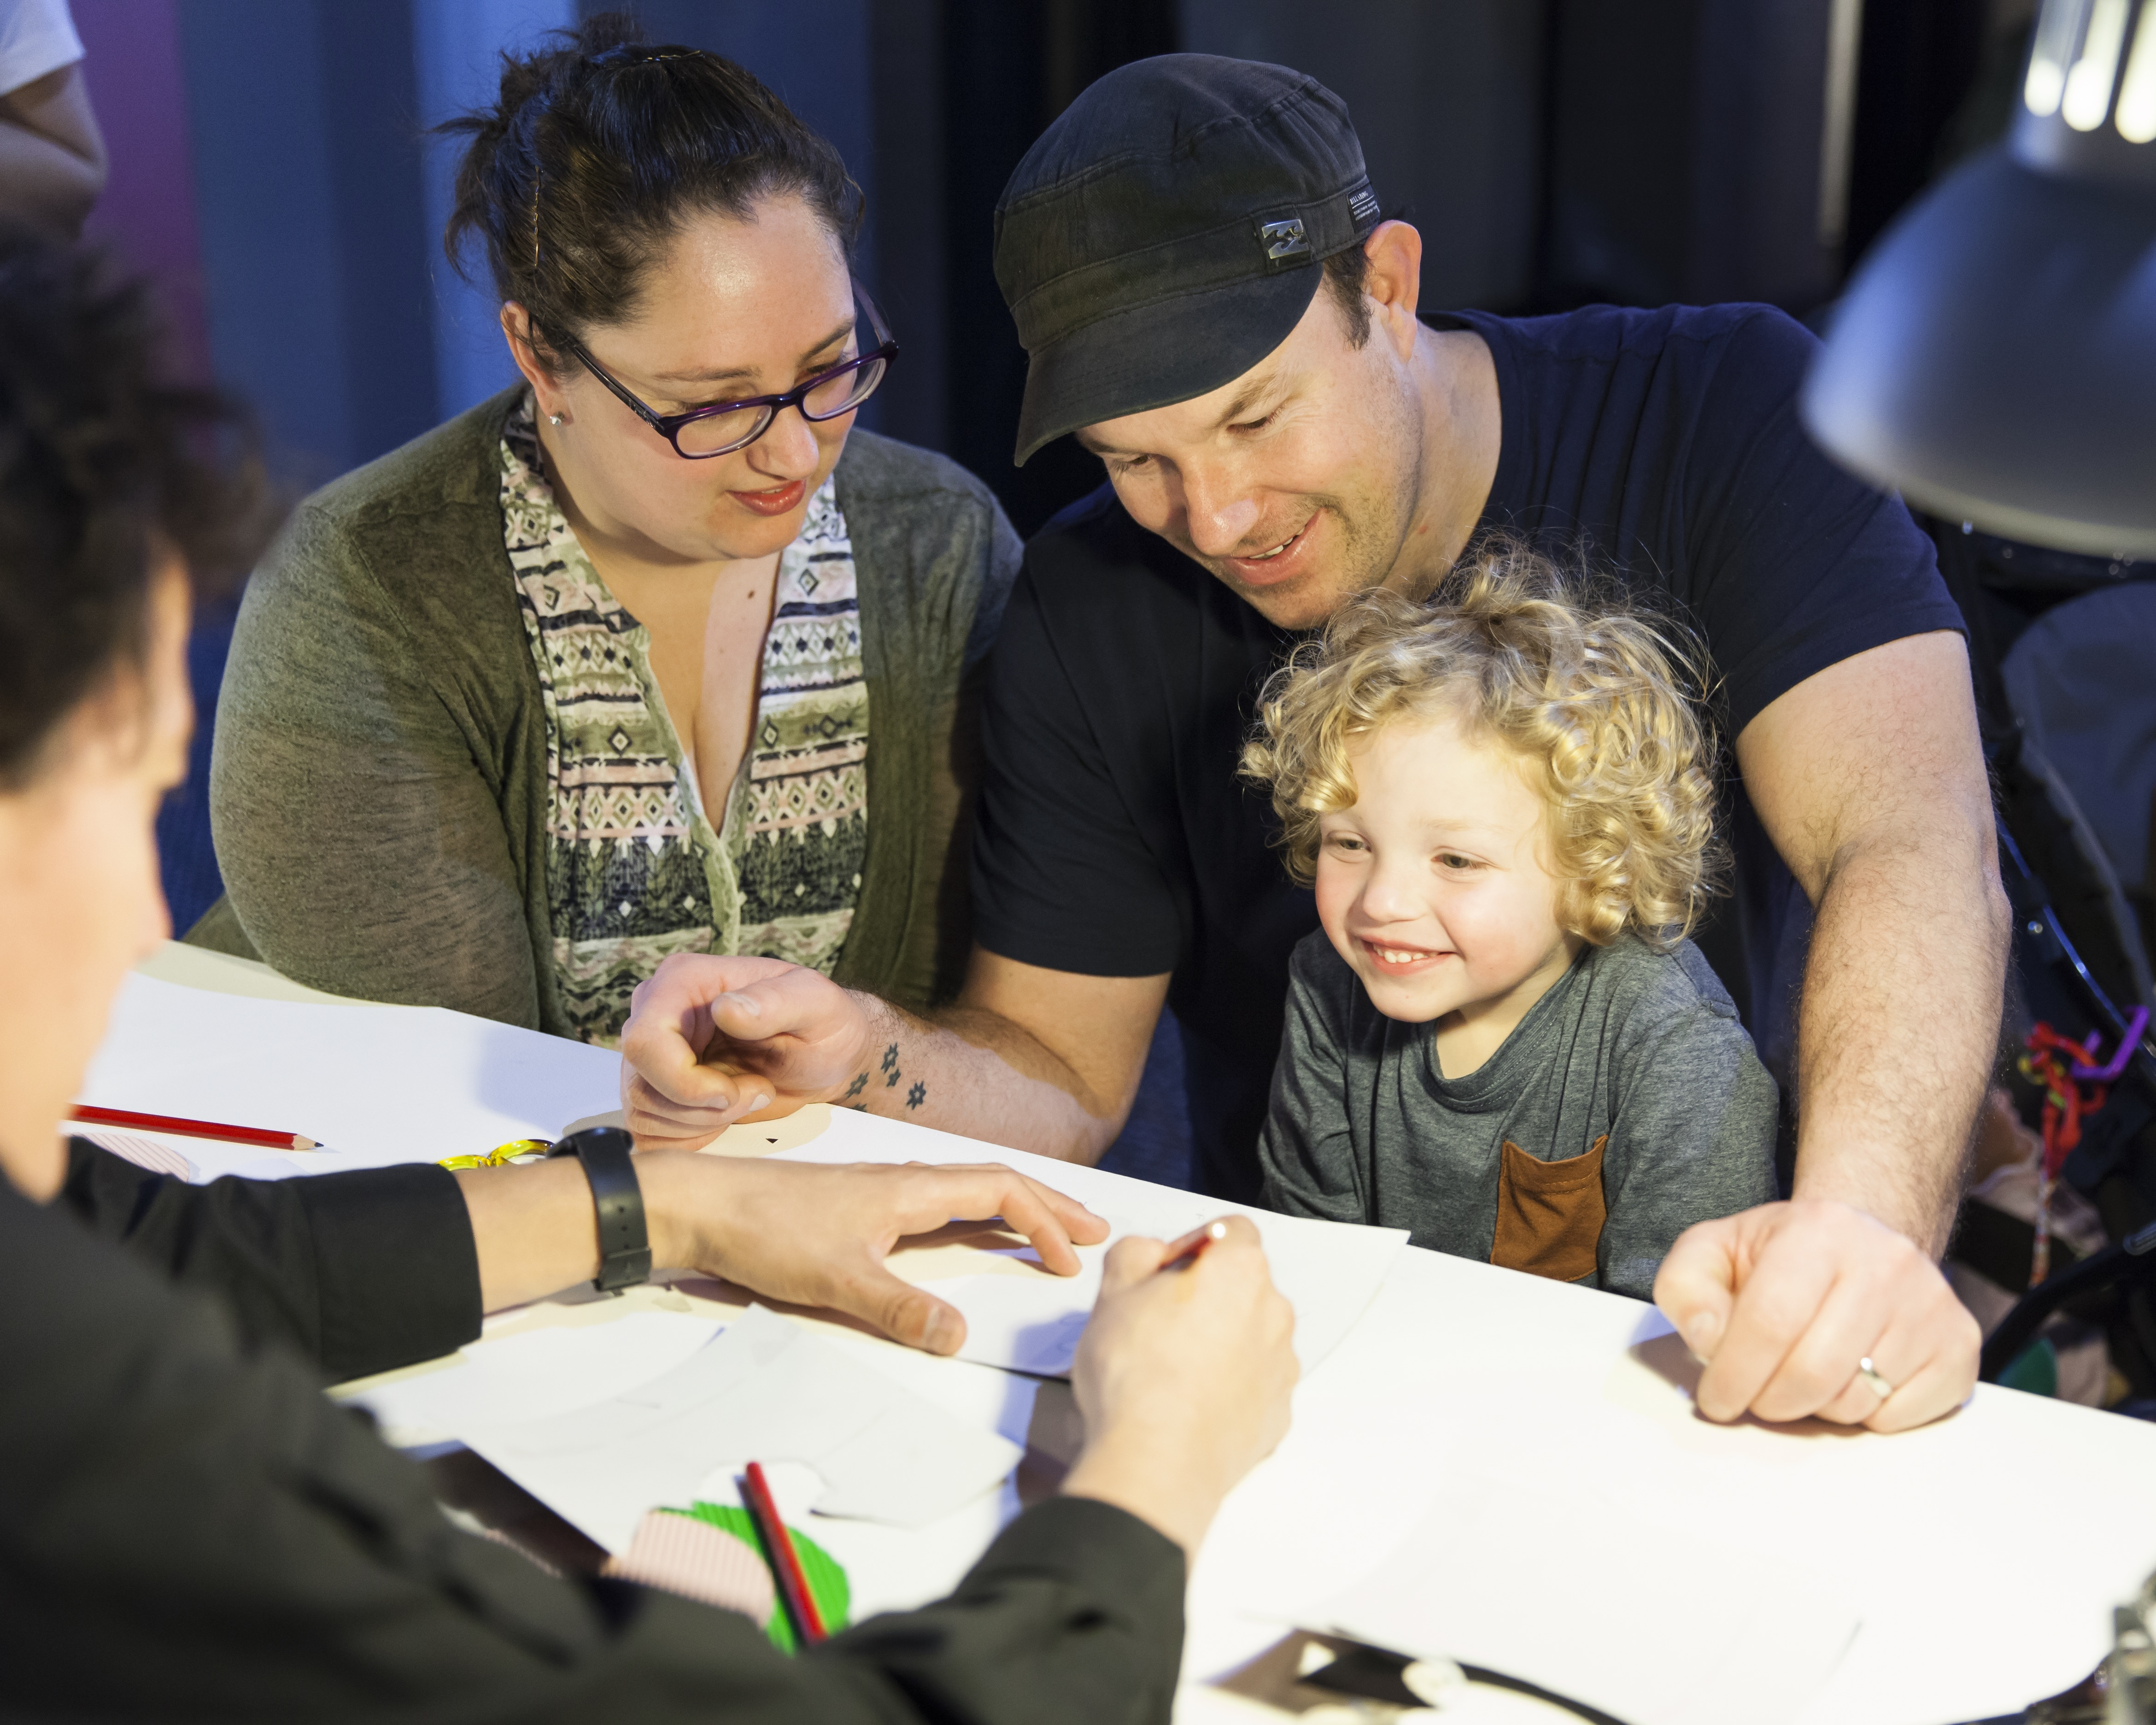 Family group, woman, man and child with blonde curly hair smiling as they watch woman draw.